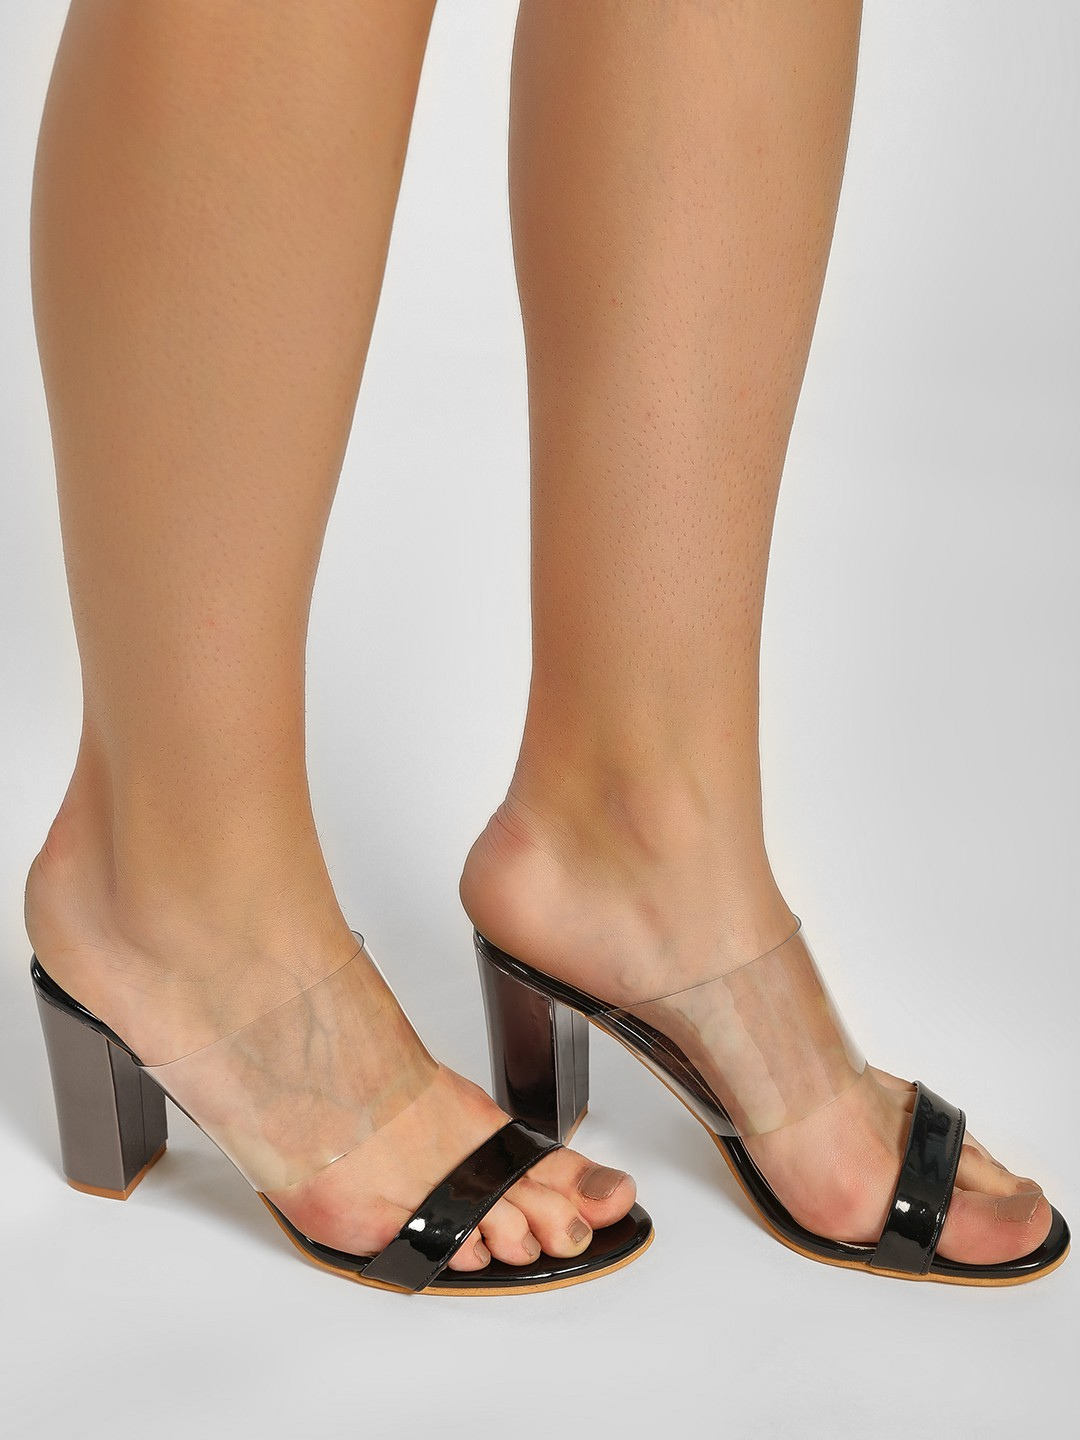 My Foot Couture Black Transparent Strap Block Heeled Sandals 1